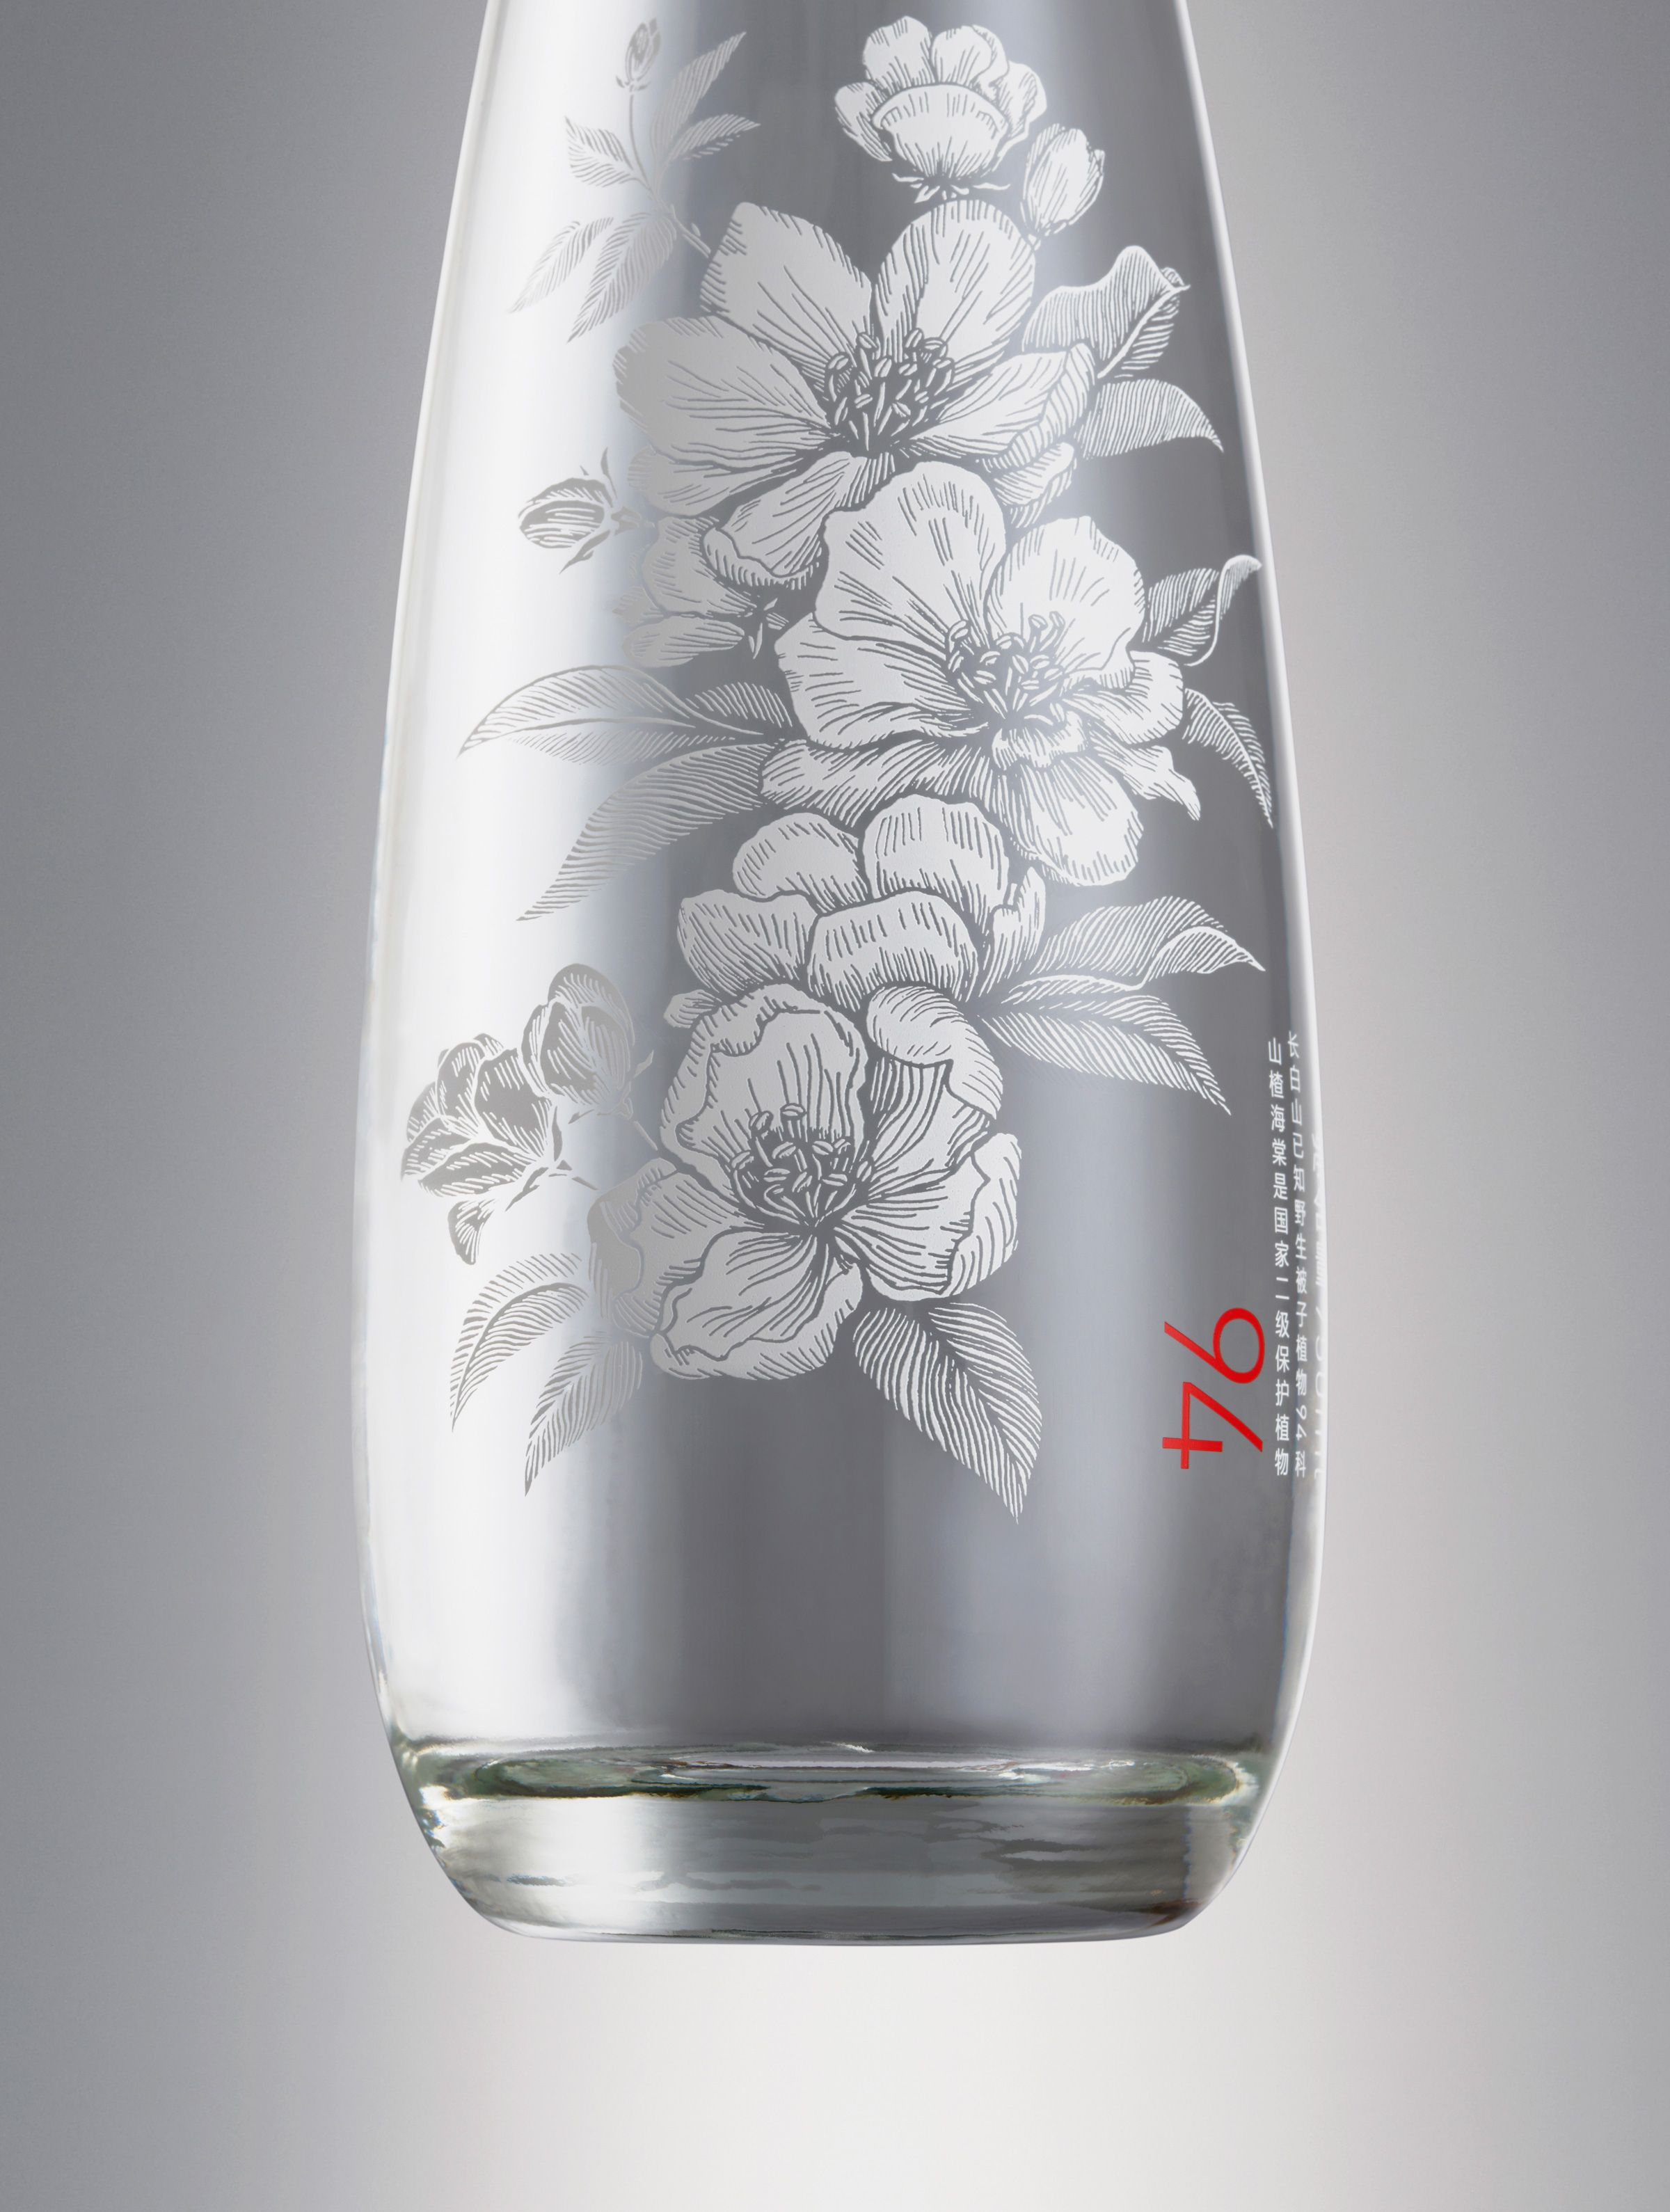 Nongfu Spring mineral water packaging. The bottle design features eight different plant and animal species from Moya Spring, at the foot of Changbai Mountain - the volcanic region bordering China and North Korea that produces the water. Designed by www.horse-studio.com